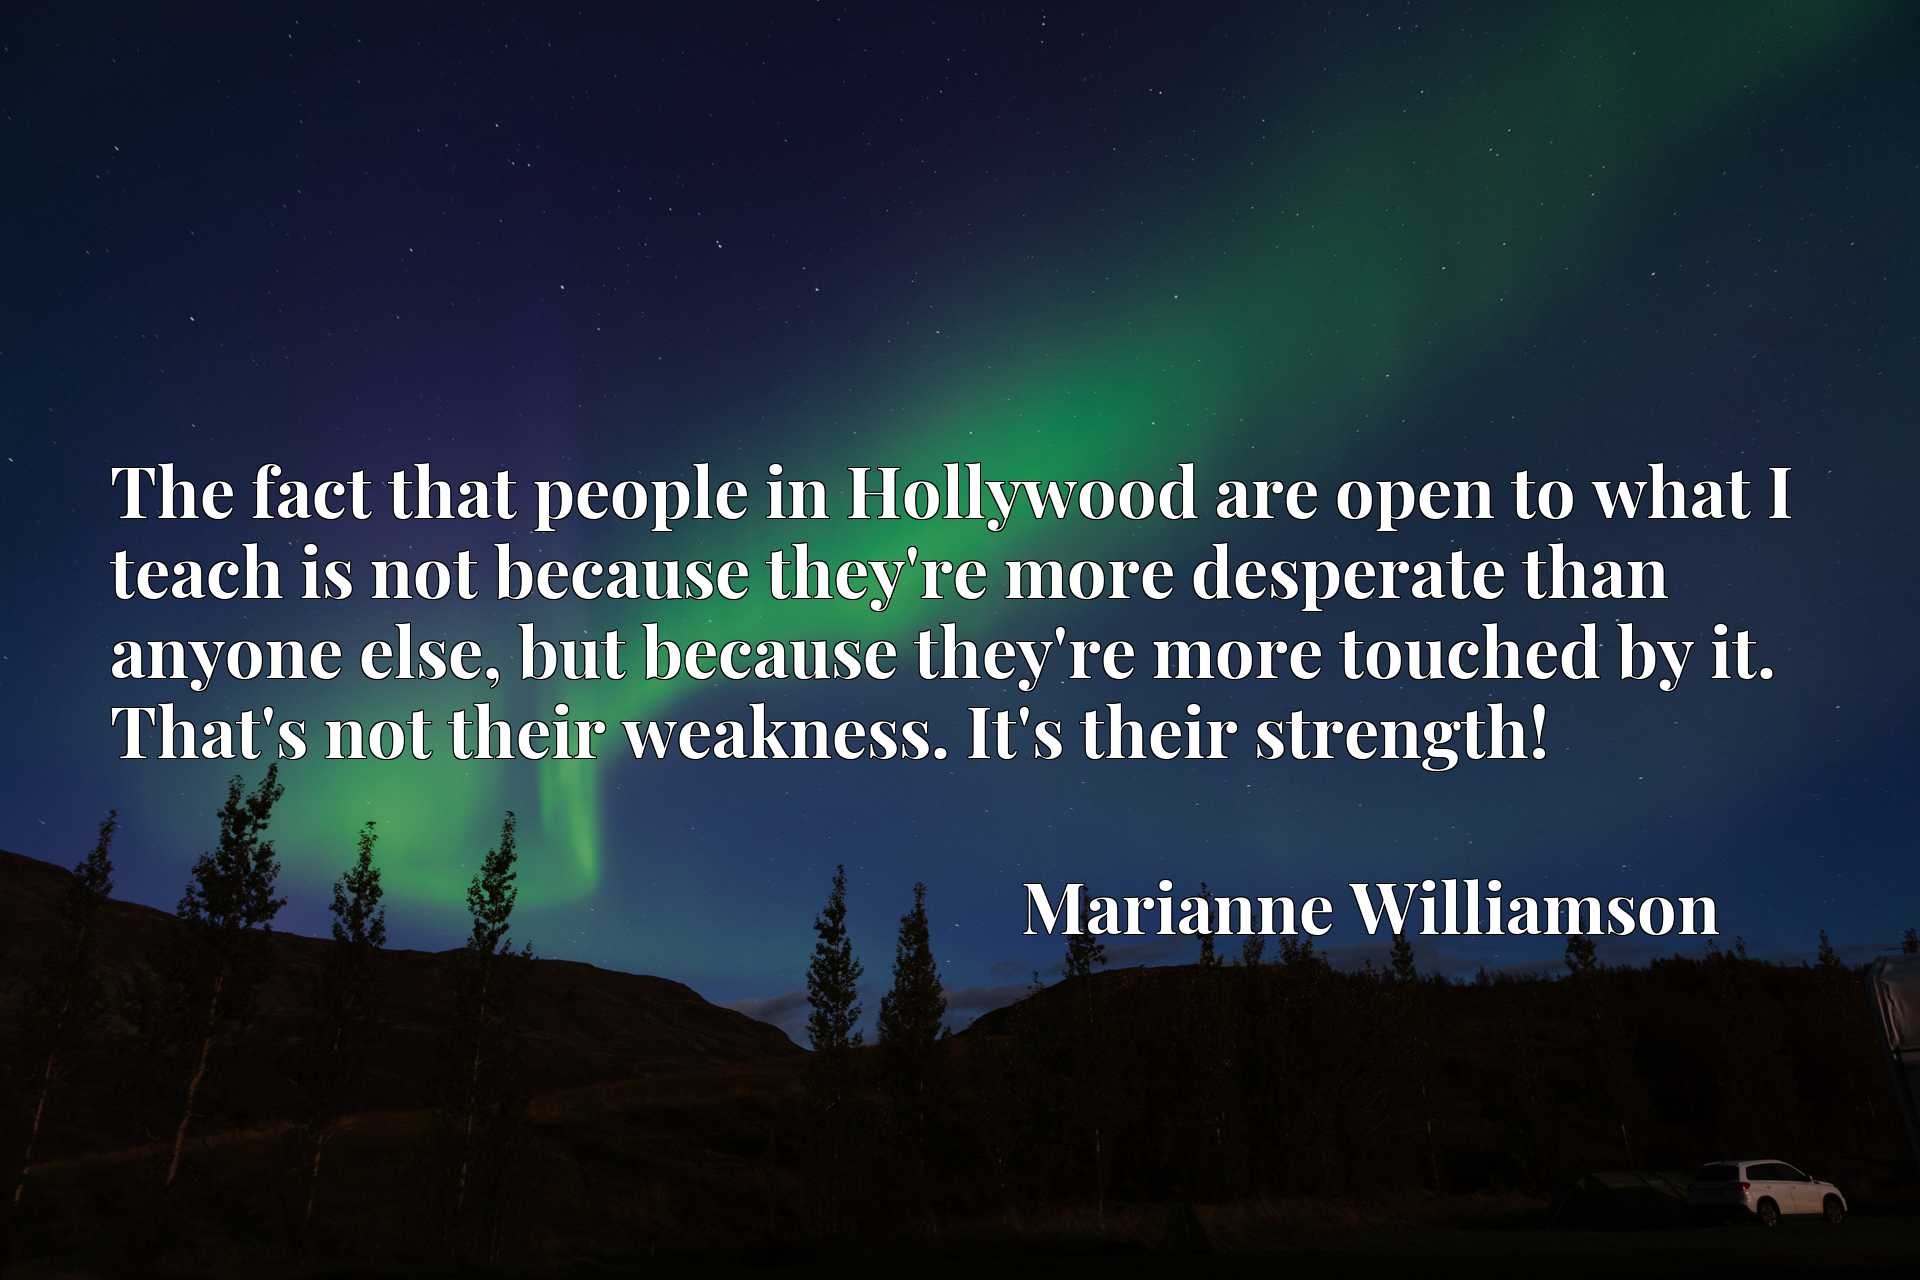 The fact that people in Hollywood are open to what I teach is not because they're more desperate than anyone else, but because they're more touched by it. That's not their weakness. It's their strength!